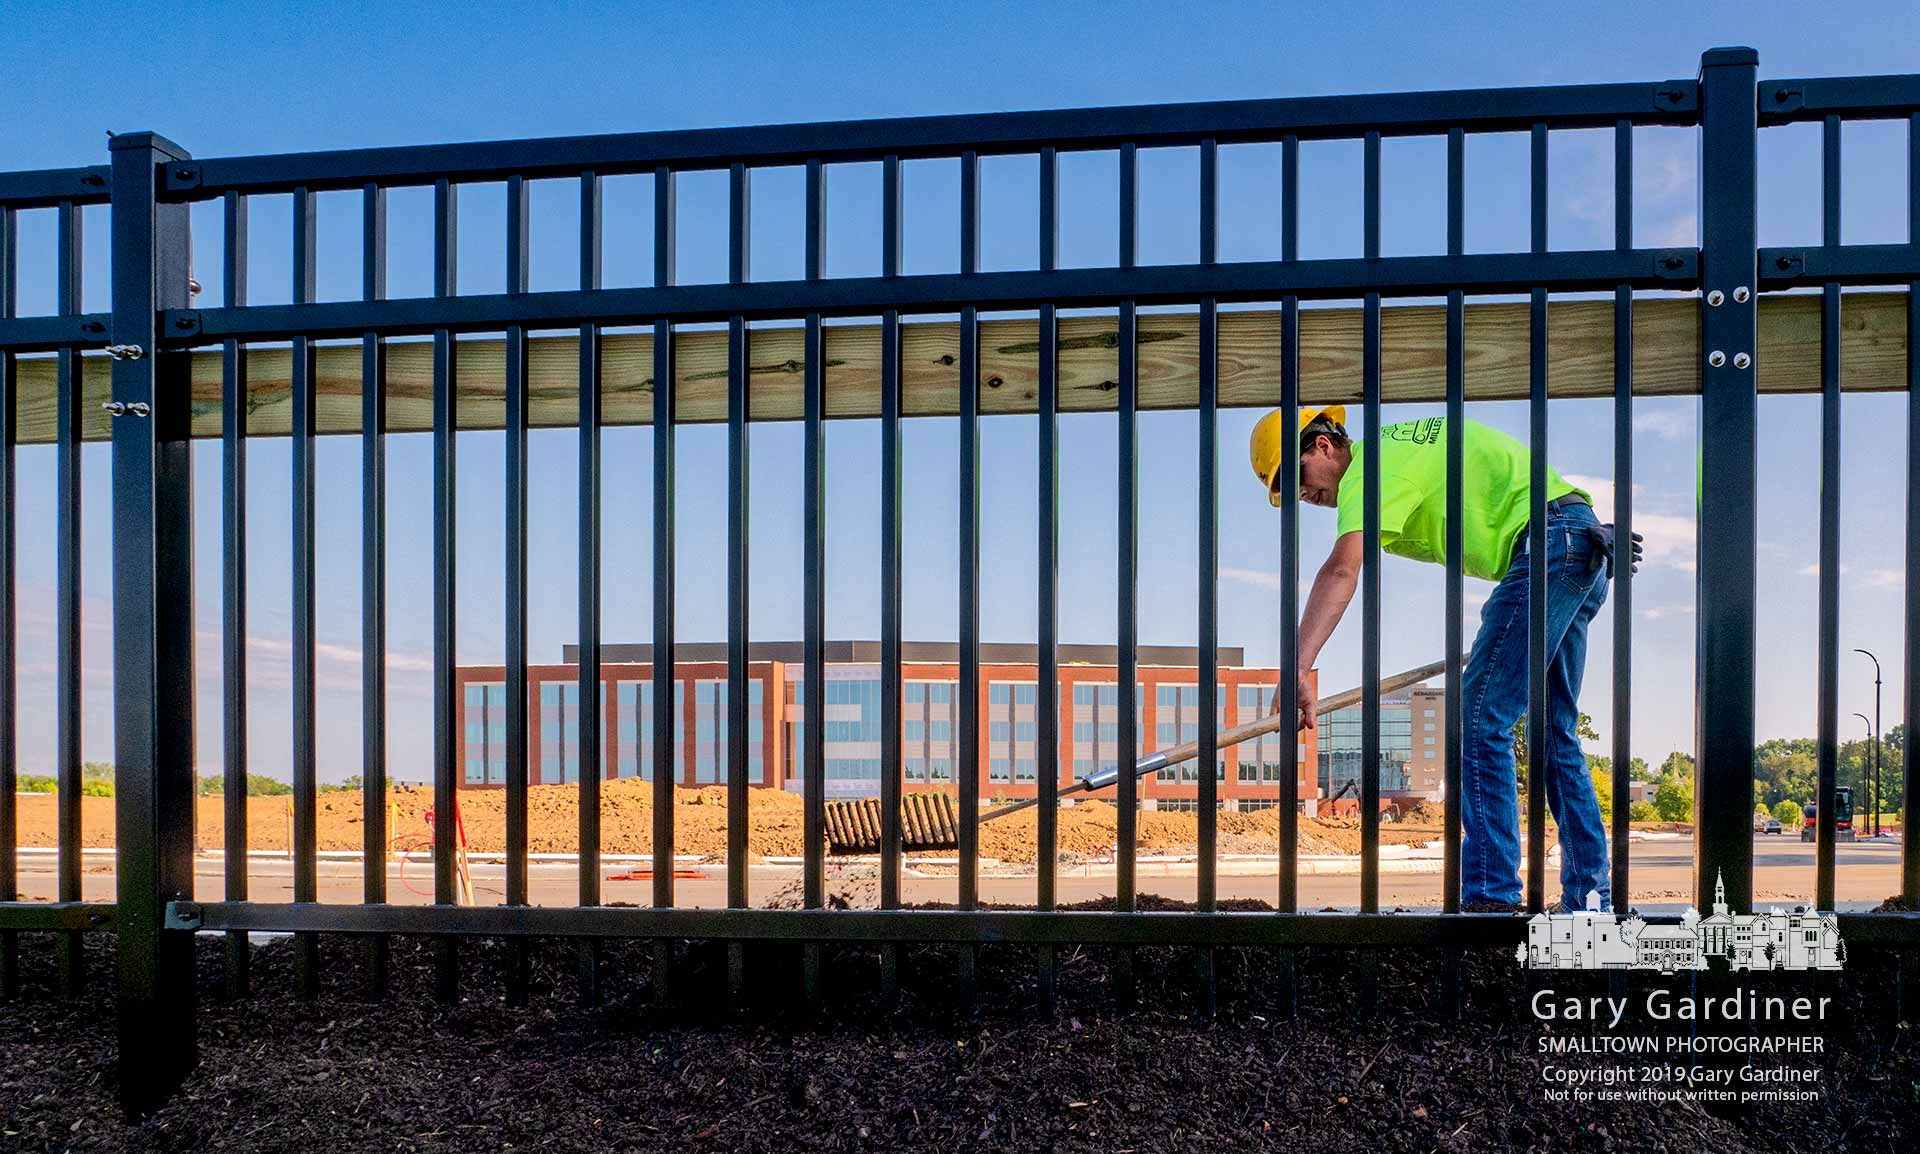 A landscaper levels dirt placed along the iron fence built at the southern edge of the new DHL Logistics headquarters building parking lot and access road. My Final Photo for Aug. 8, 2019.